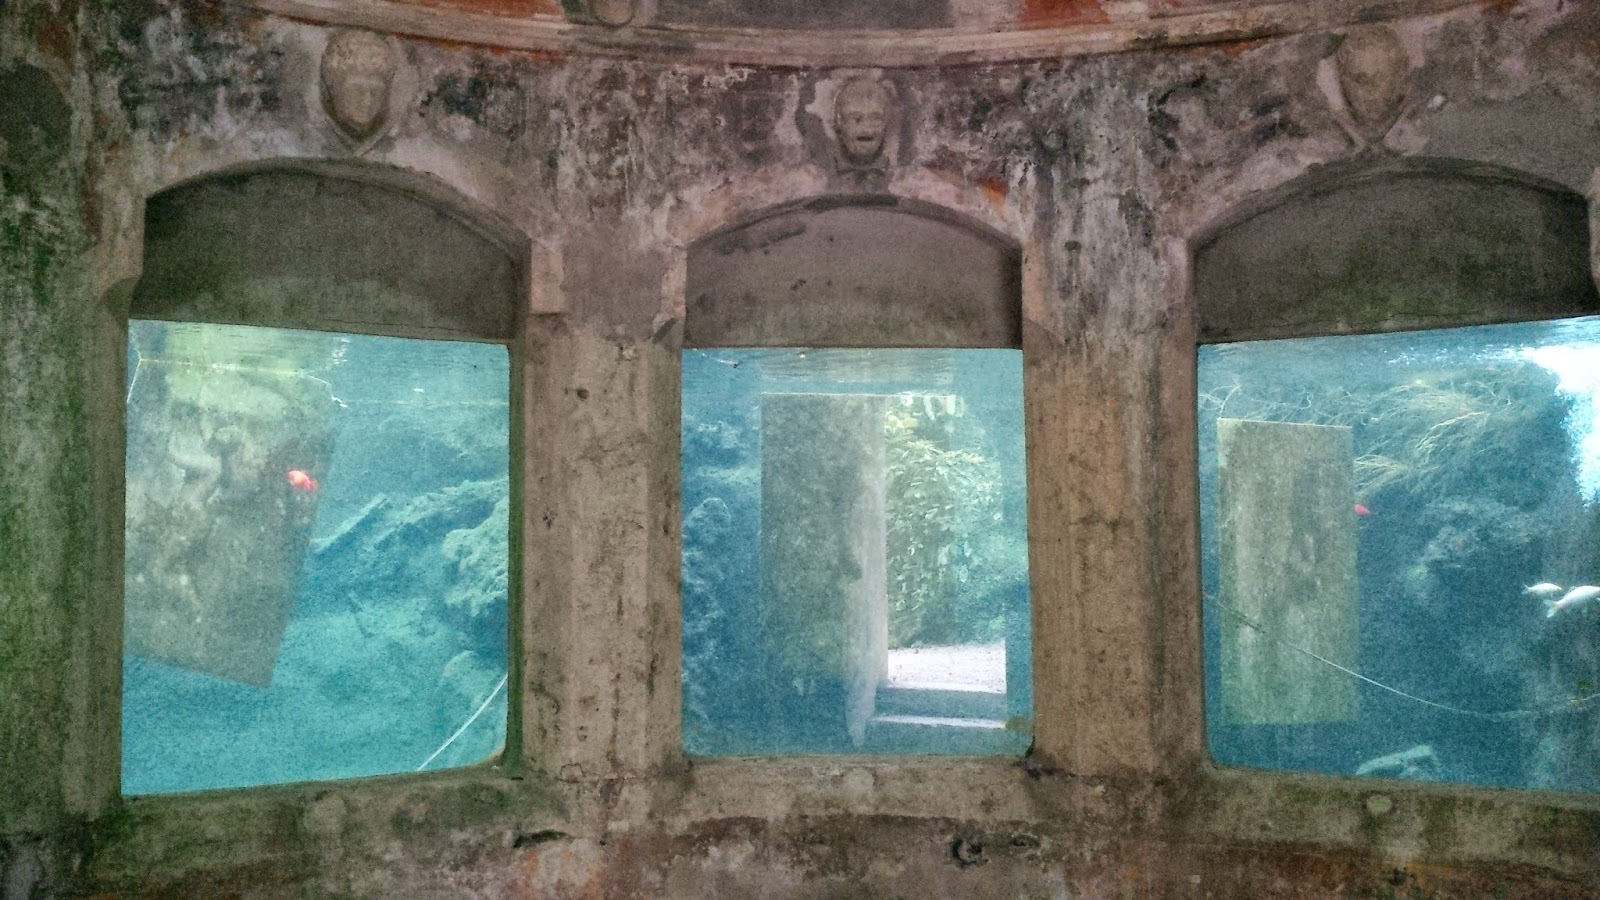 The semiabandoned aquarium in the park of Villa Rossi in Santorso